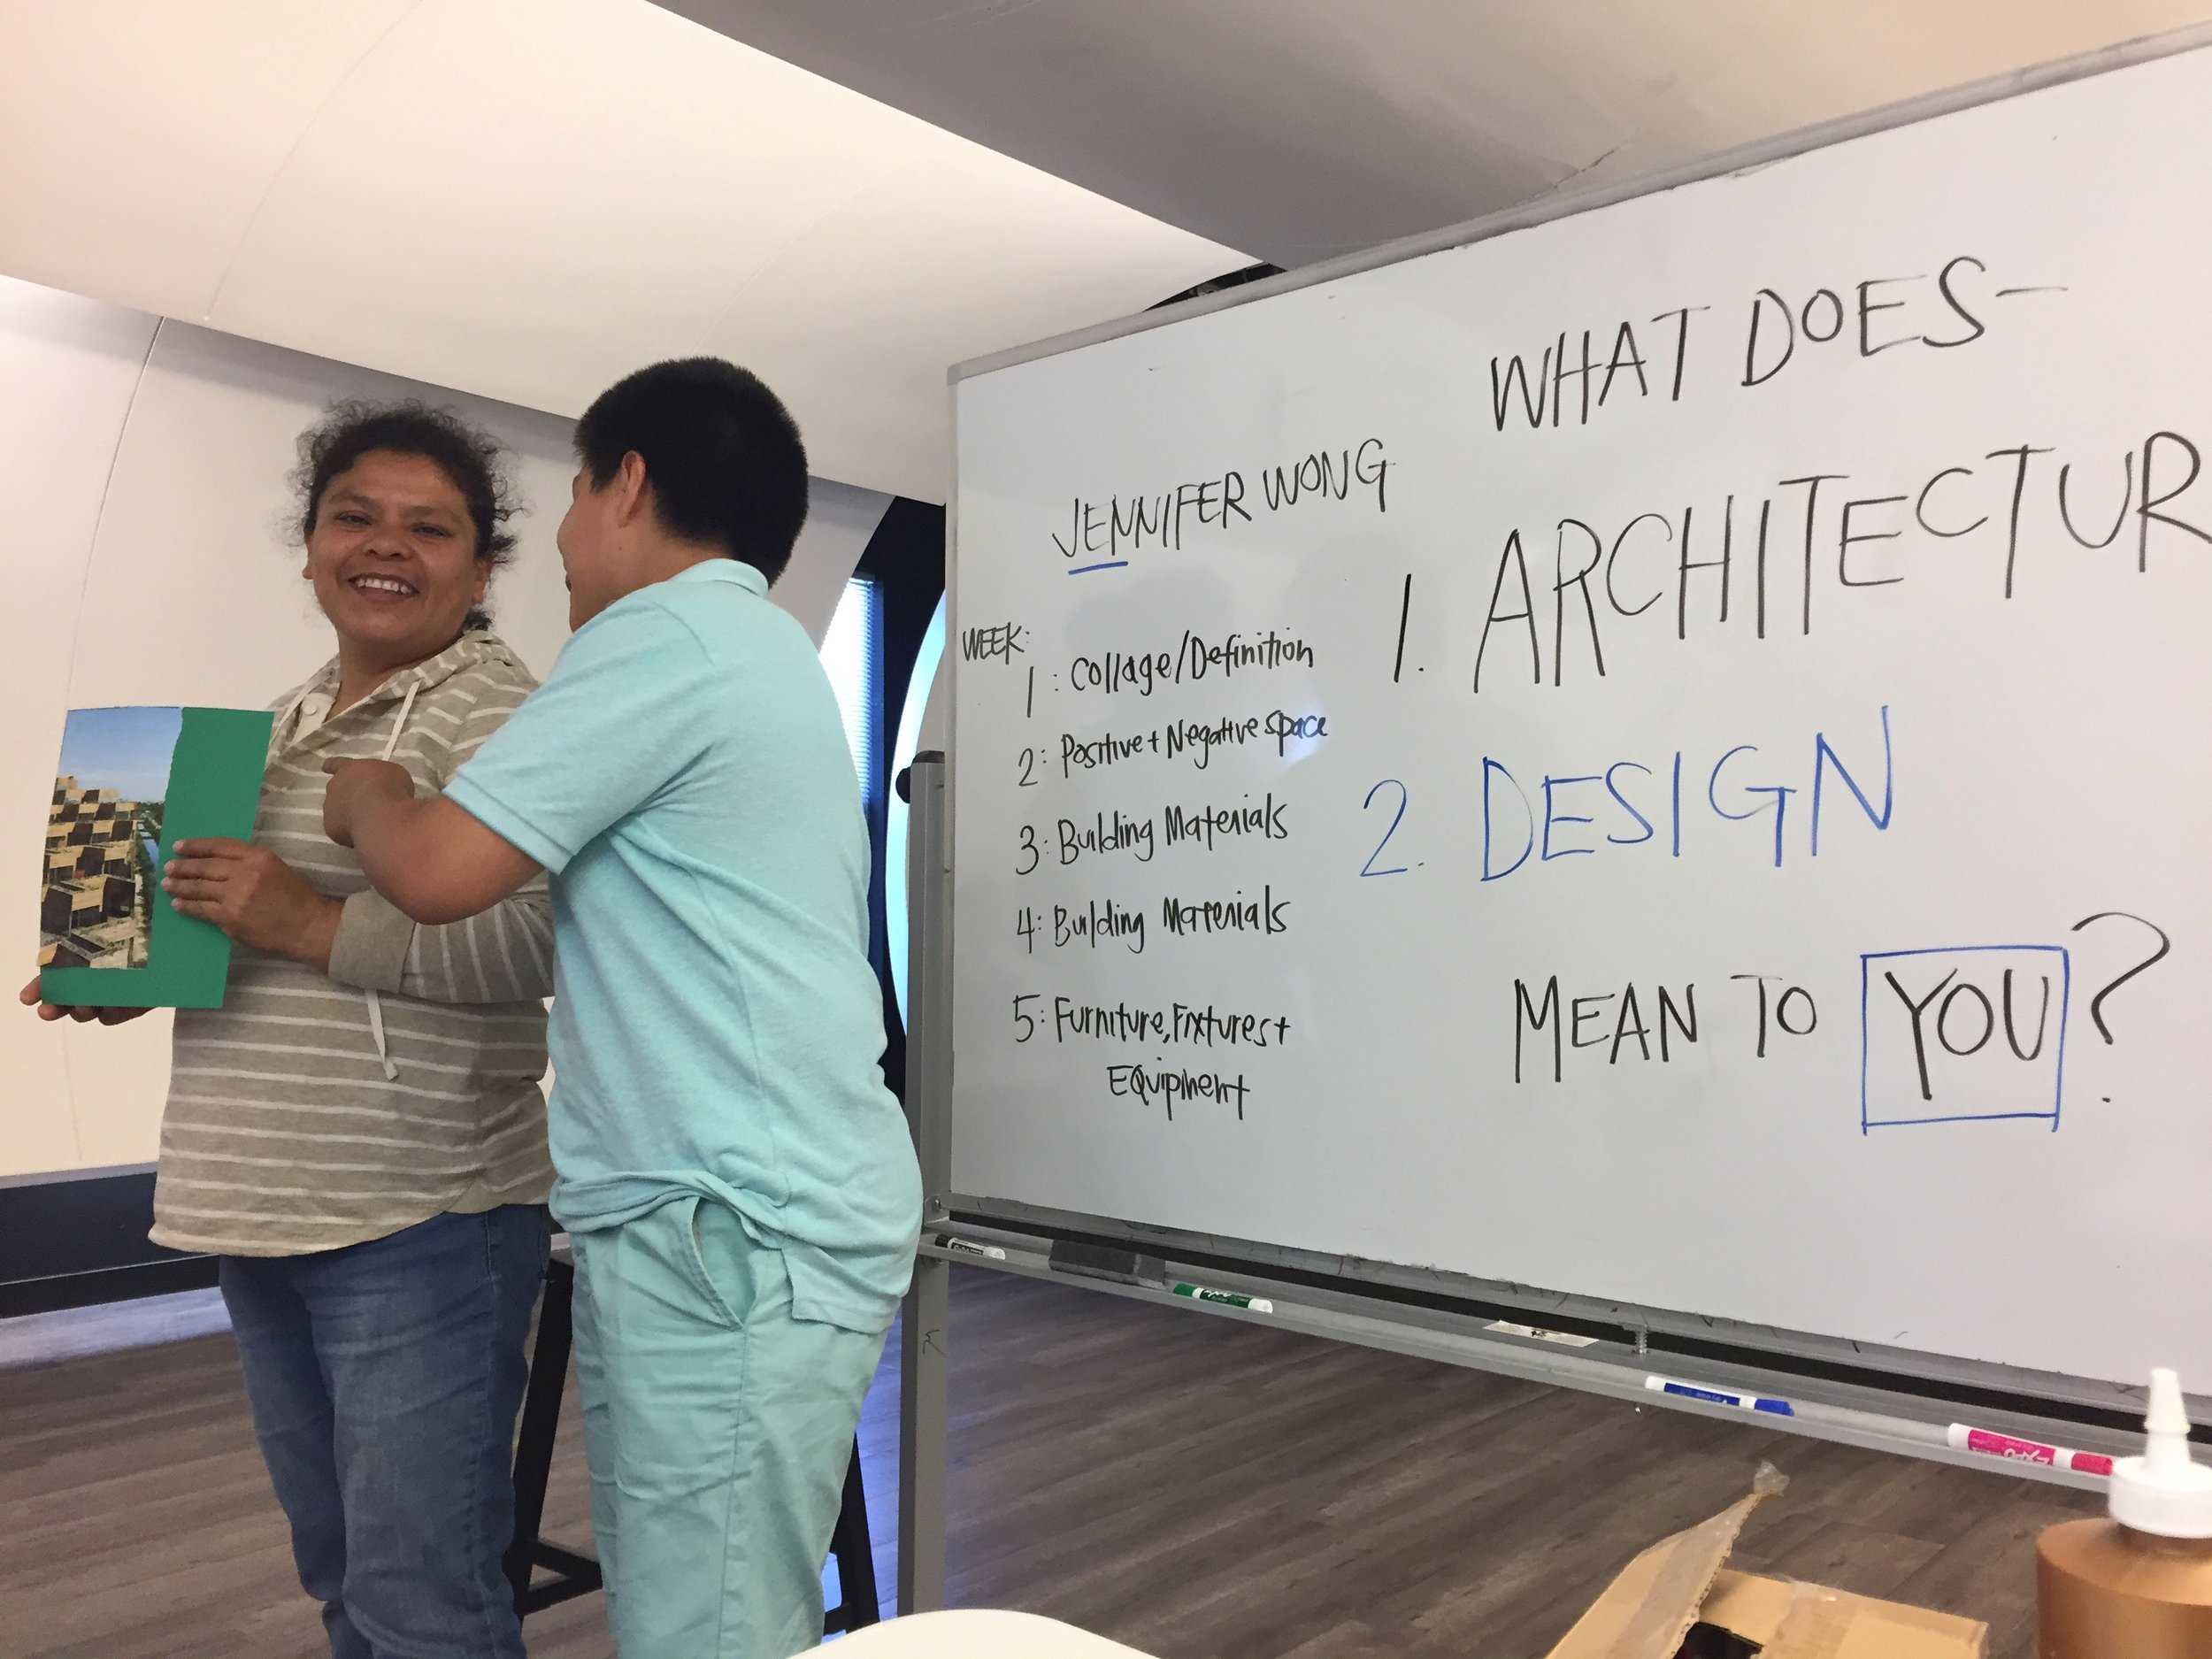 Week 1 - What does Architecture and Design mean to you?